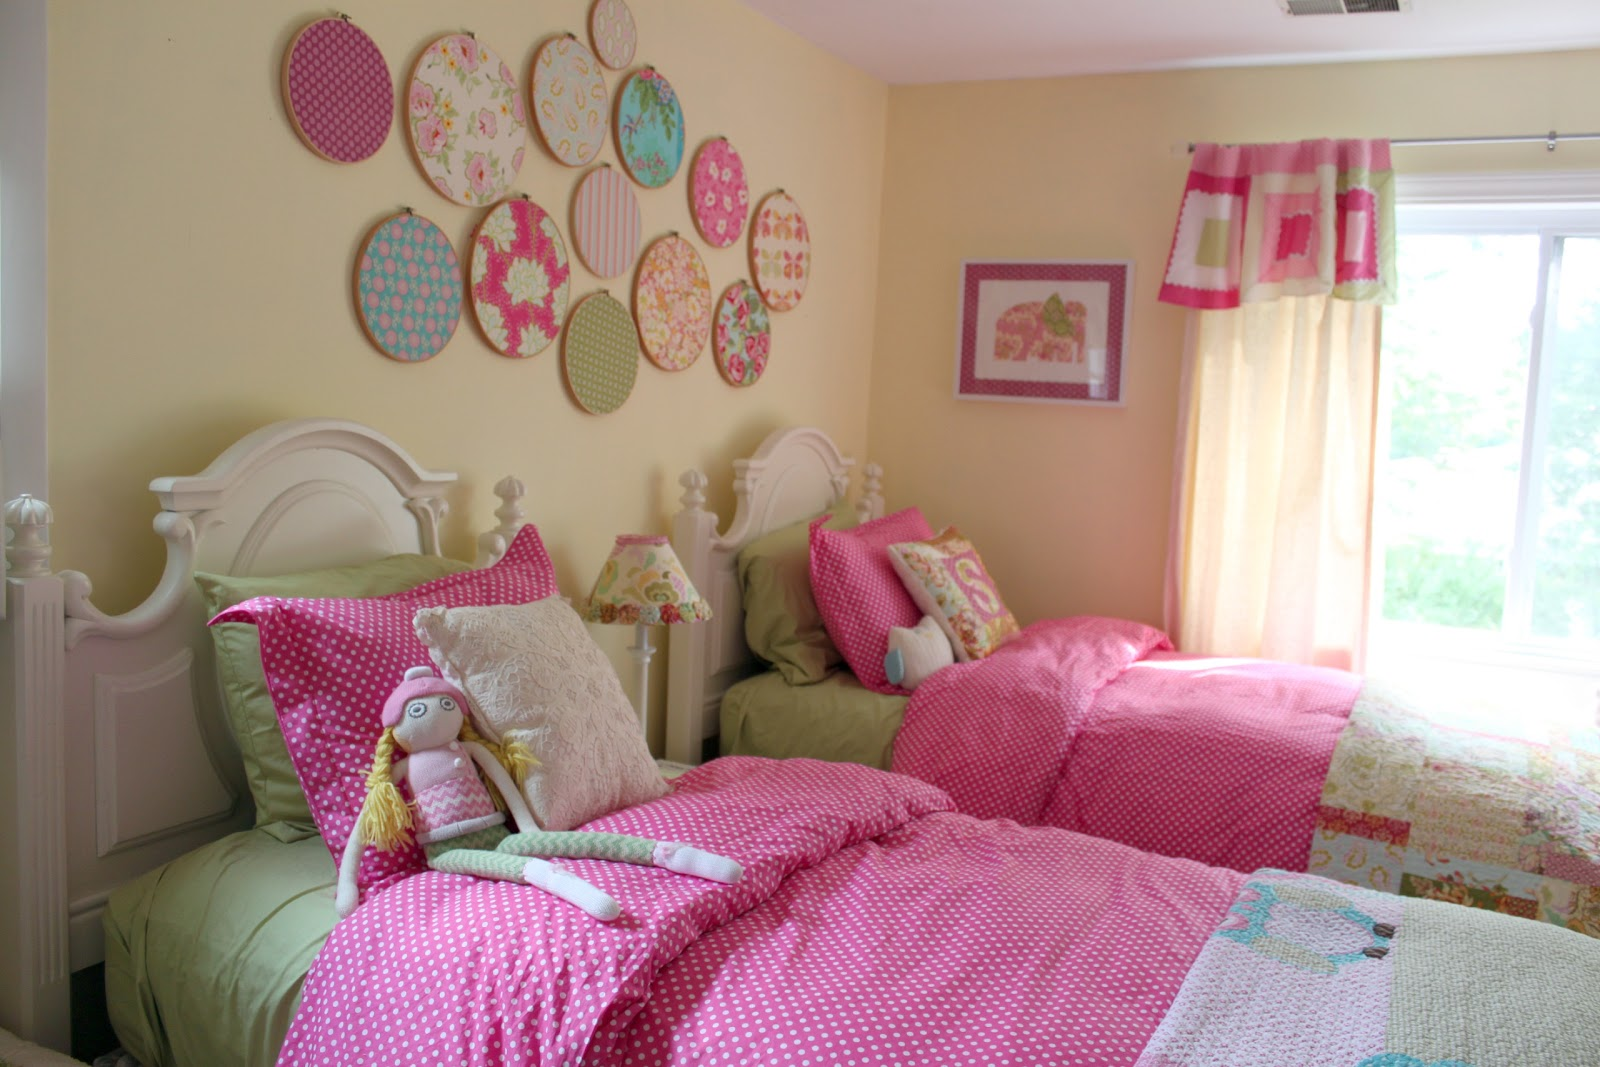 Https Thecottagemama Com 2011 07 Decorating Girls Shared Toddler Bedroom